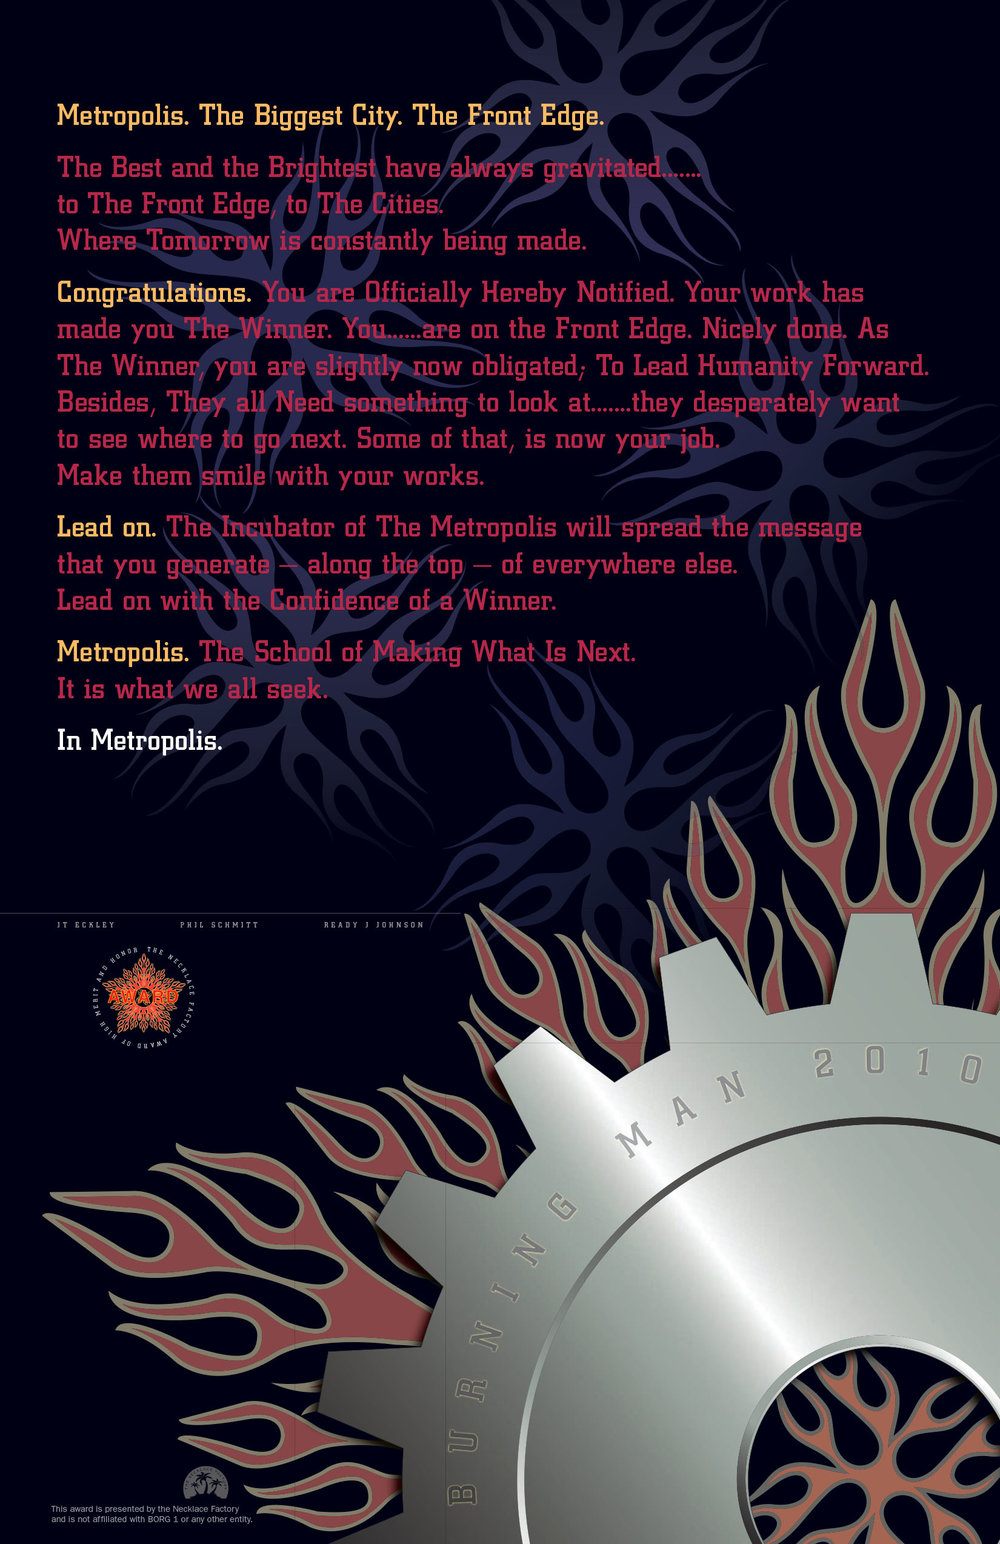 2010 Necklace Factory Burning Man Certificate  – Edition of 350 numbered and signed certificates